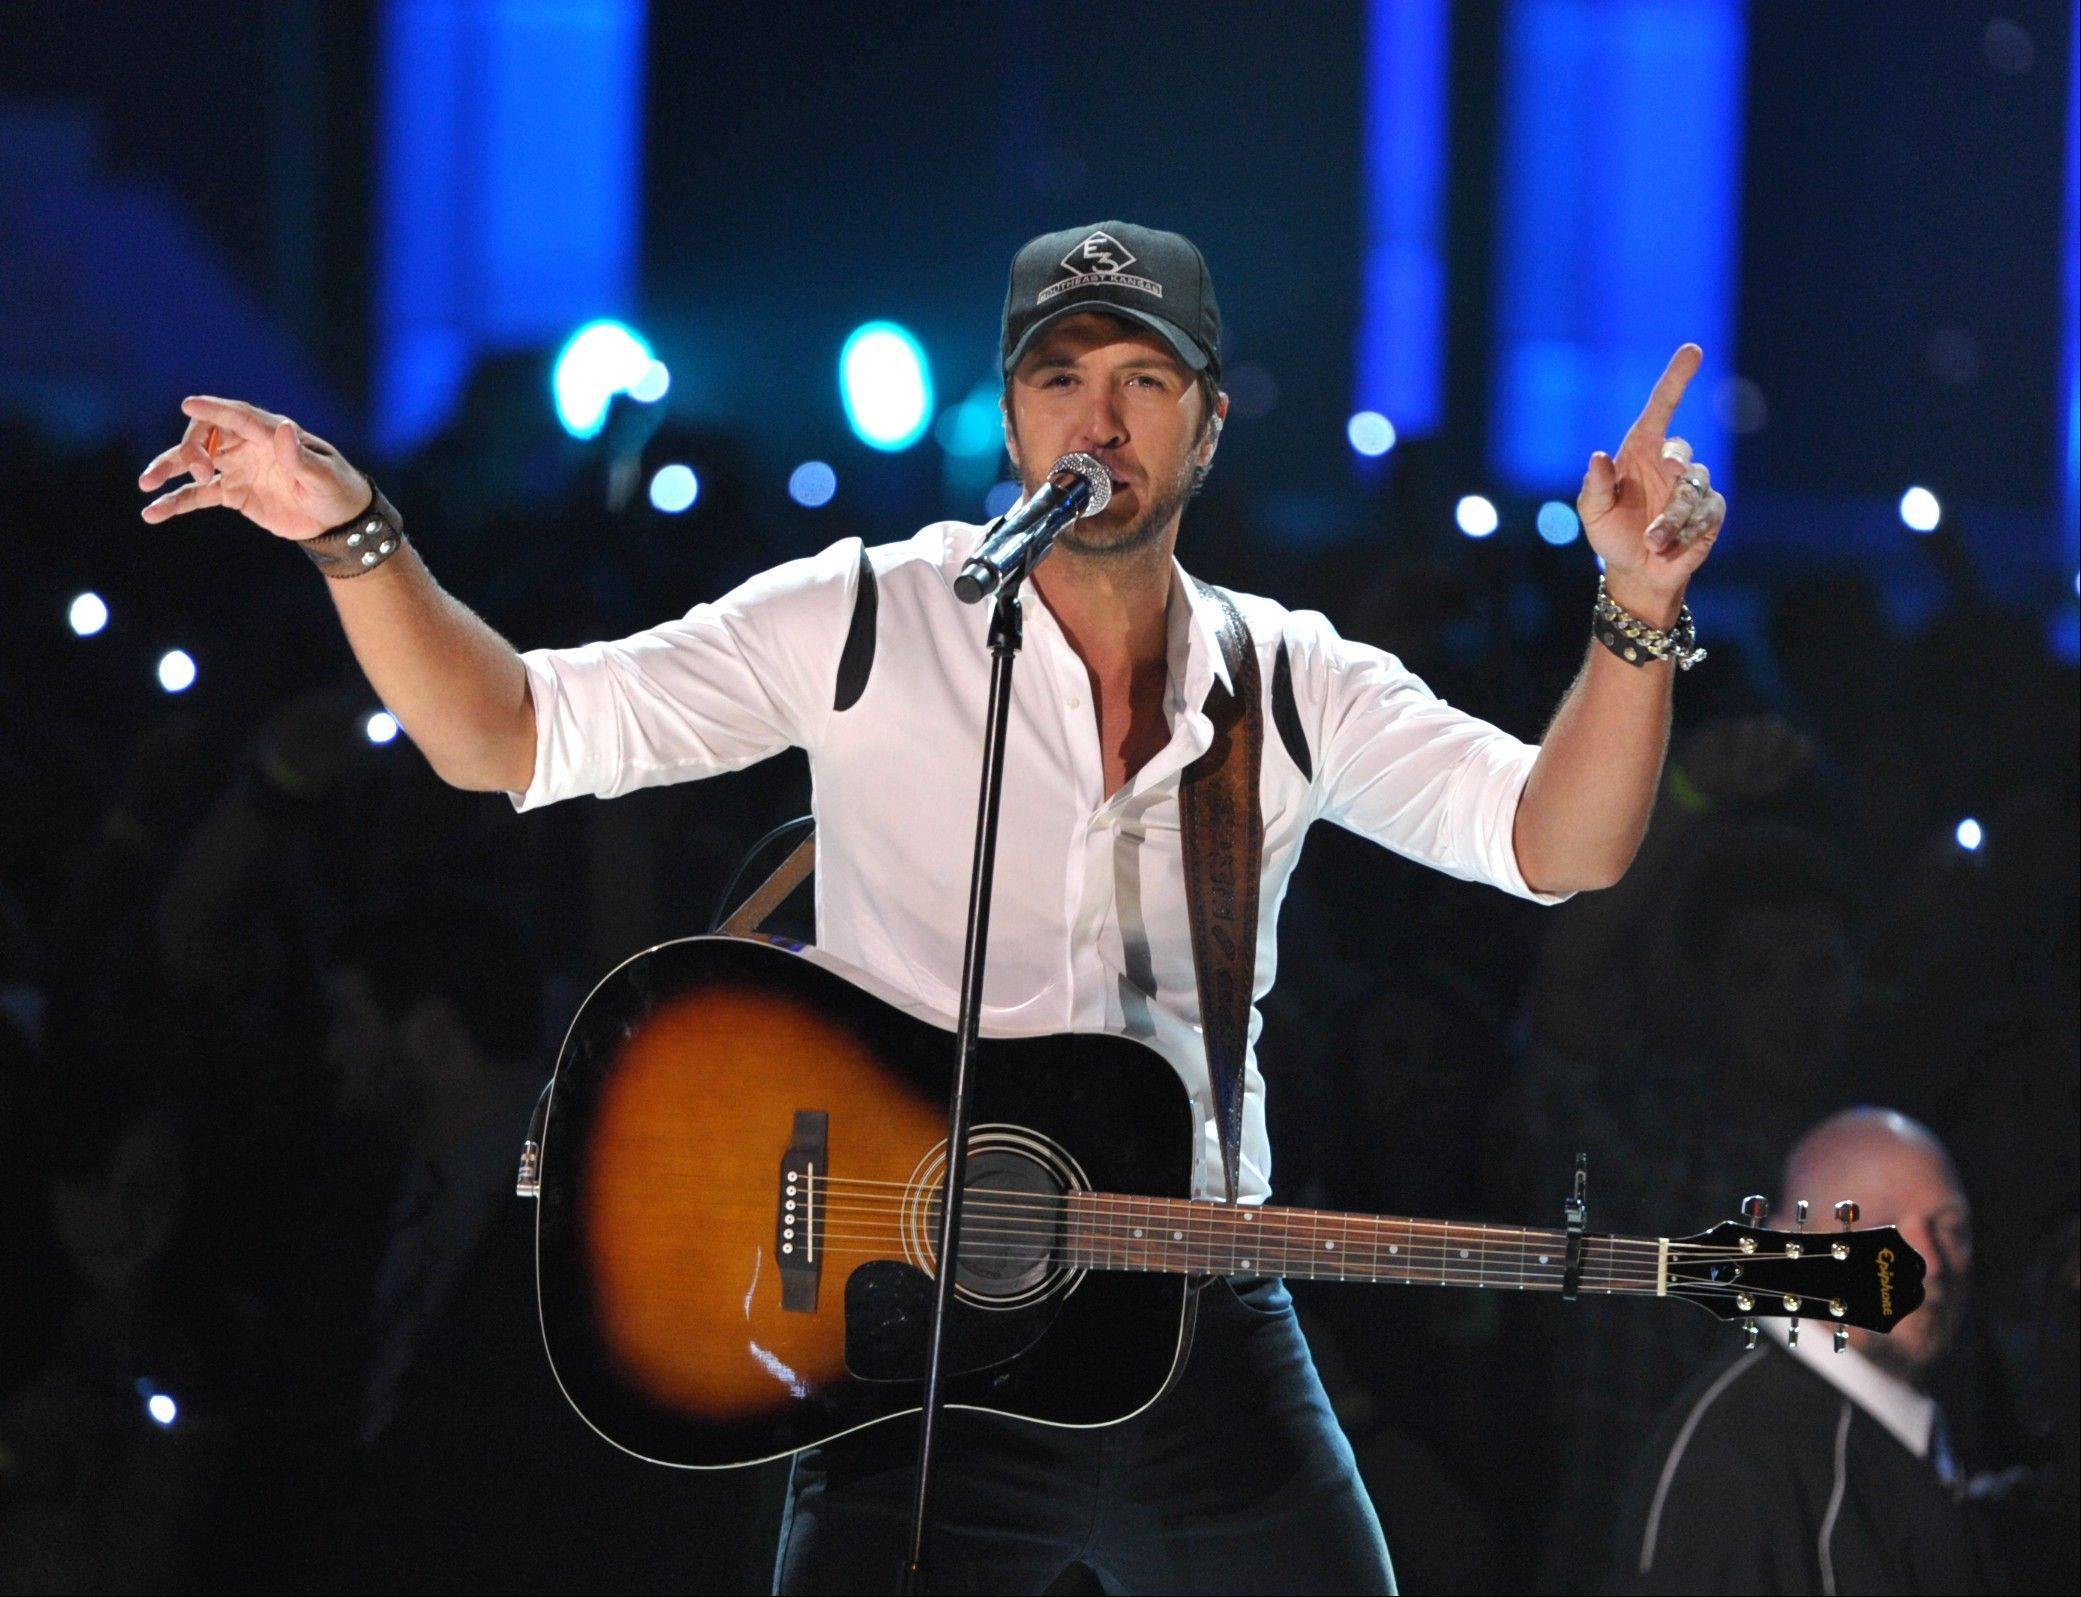 Musician Luke Bryan performs at the 2012 CMT Music Awards on Wednesday, June 6, 2012 in Nashville, Tenn.